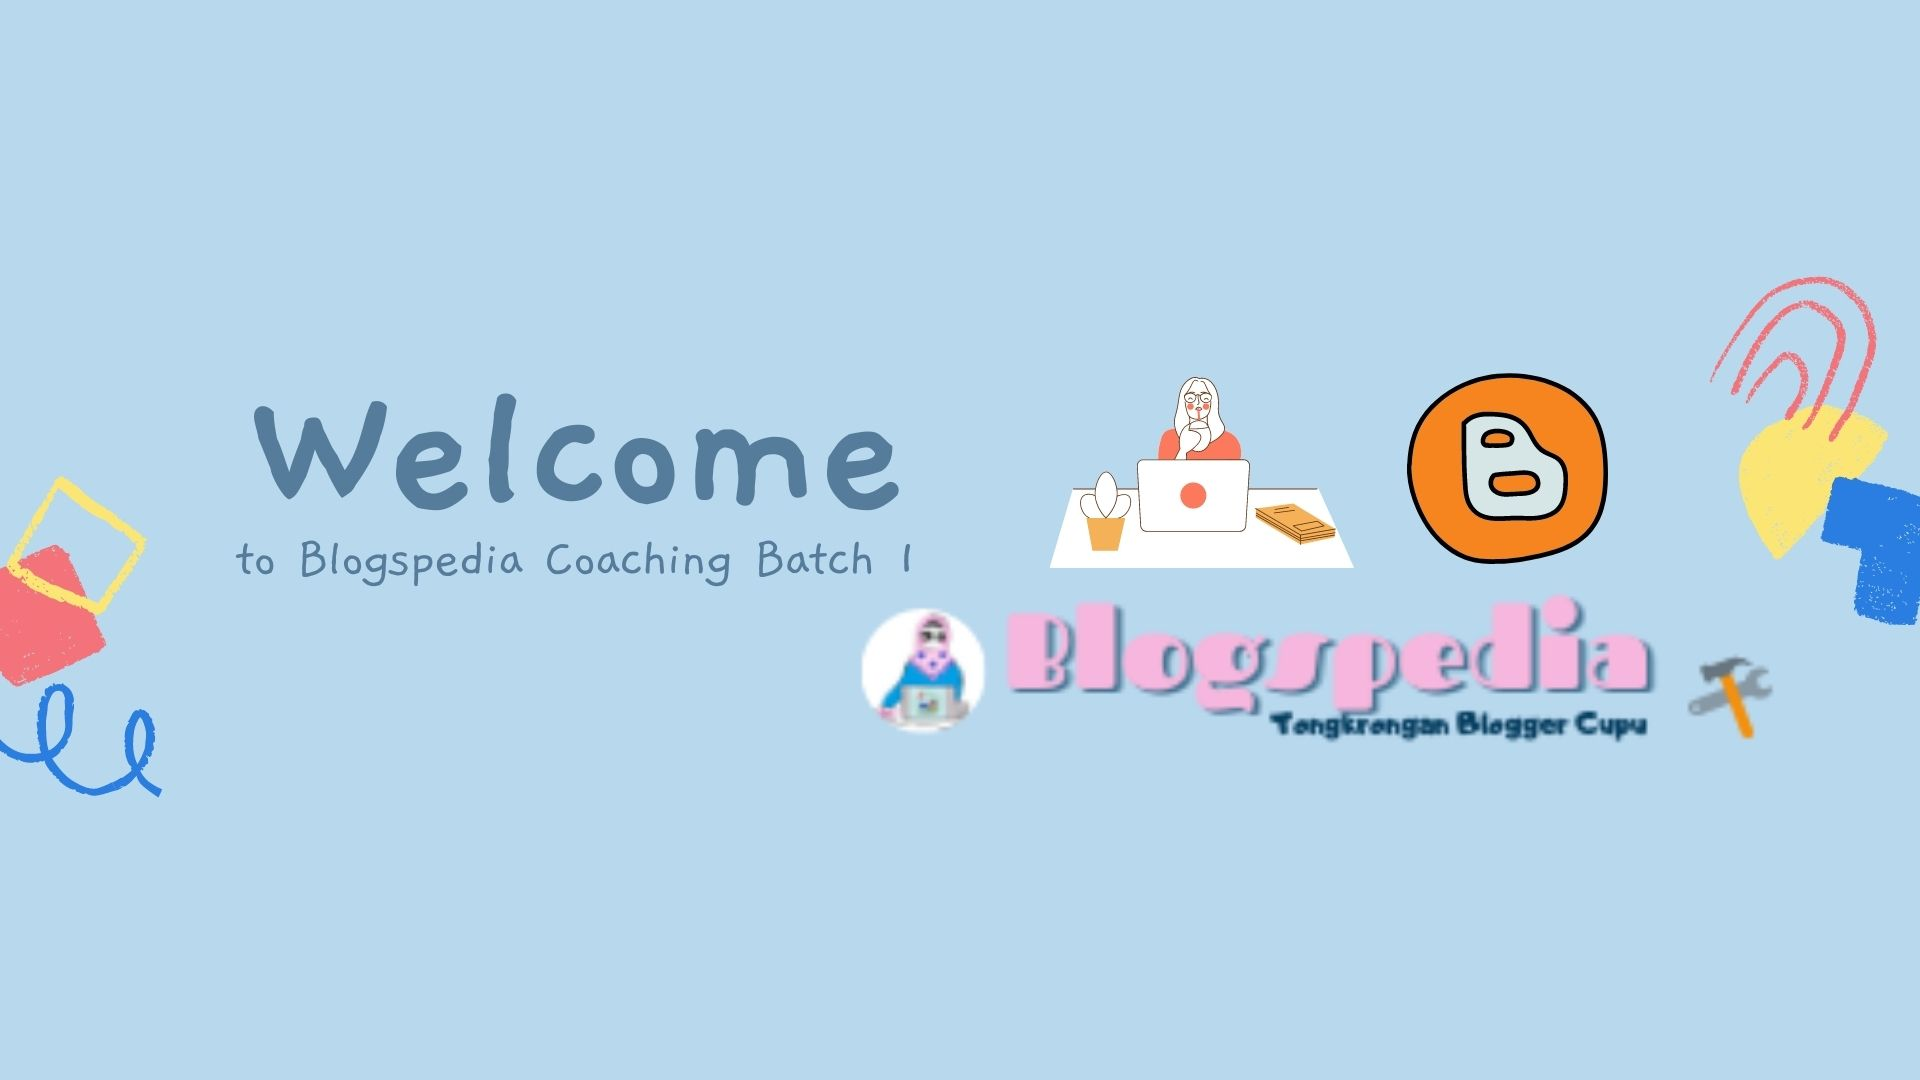 Blogspedia coaching batch 1